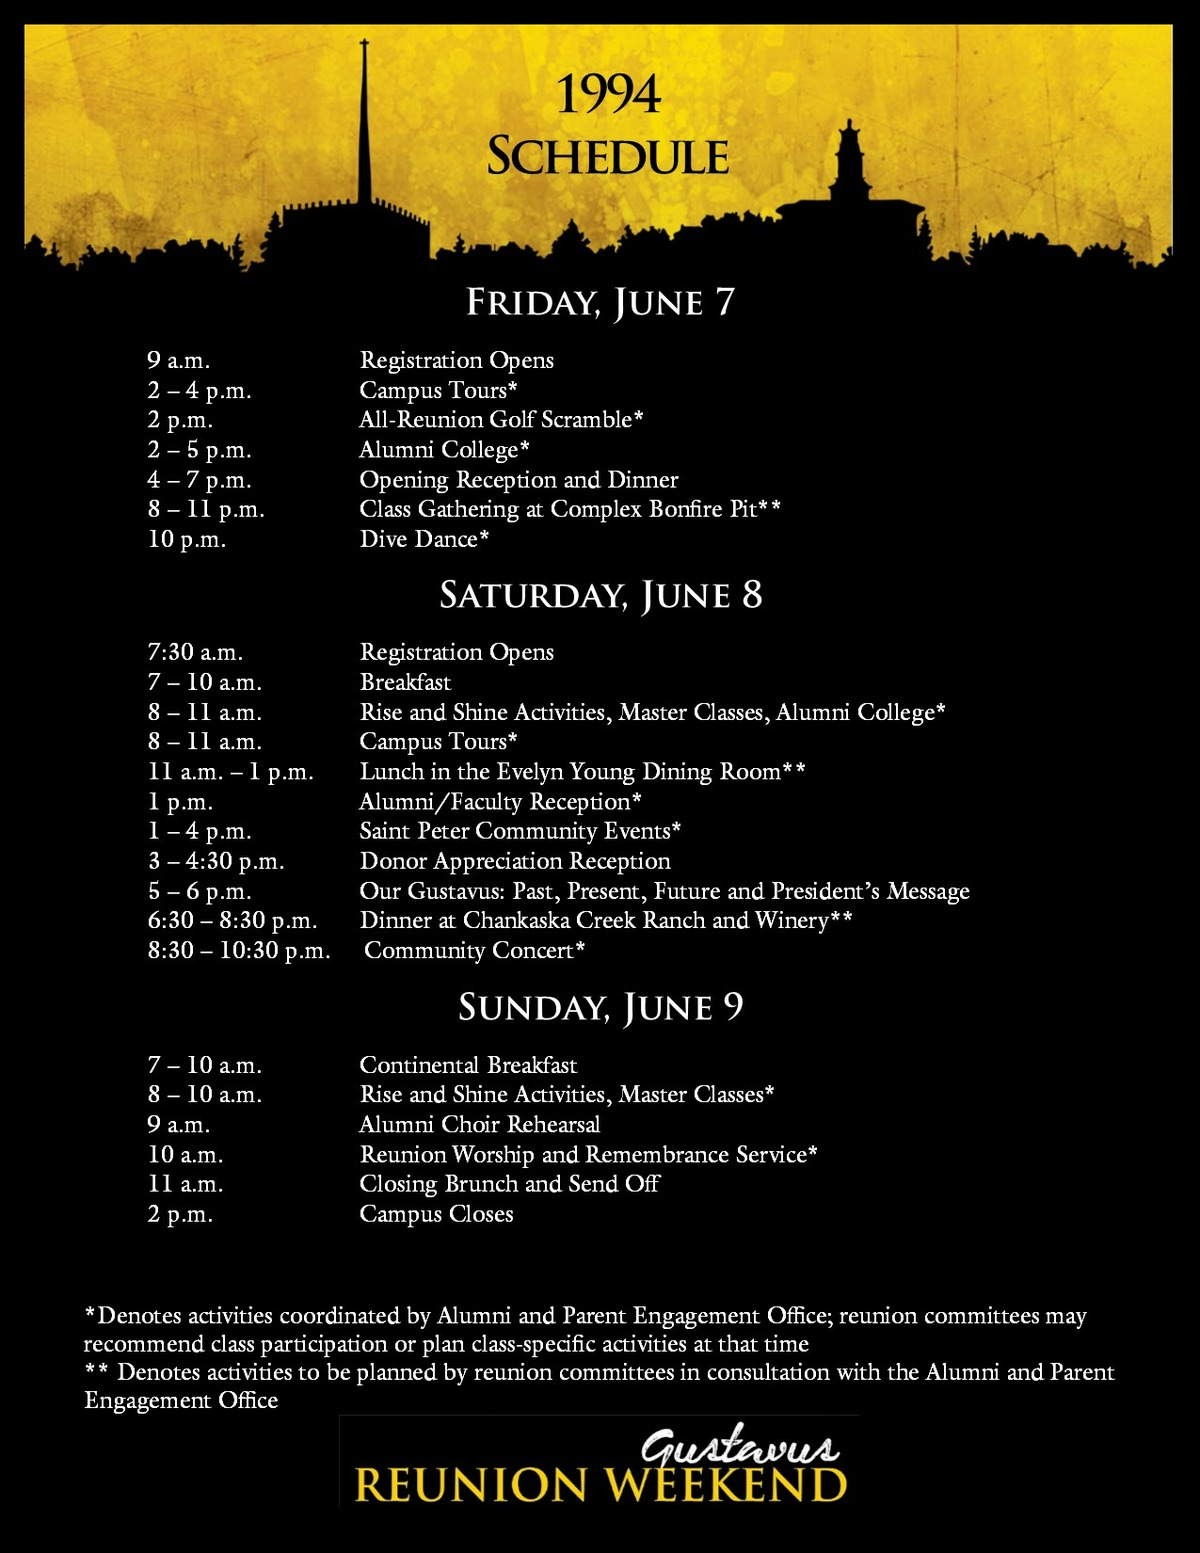 Class of 1994 Reunion Weekend Schedule 2019